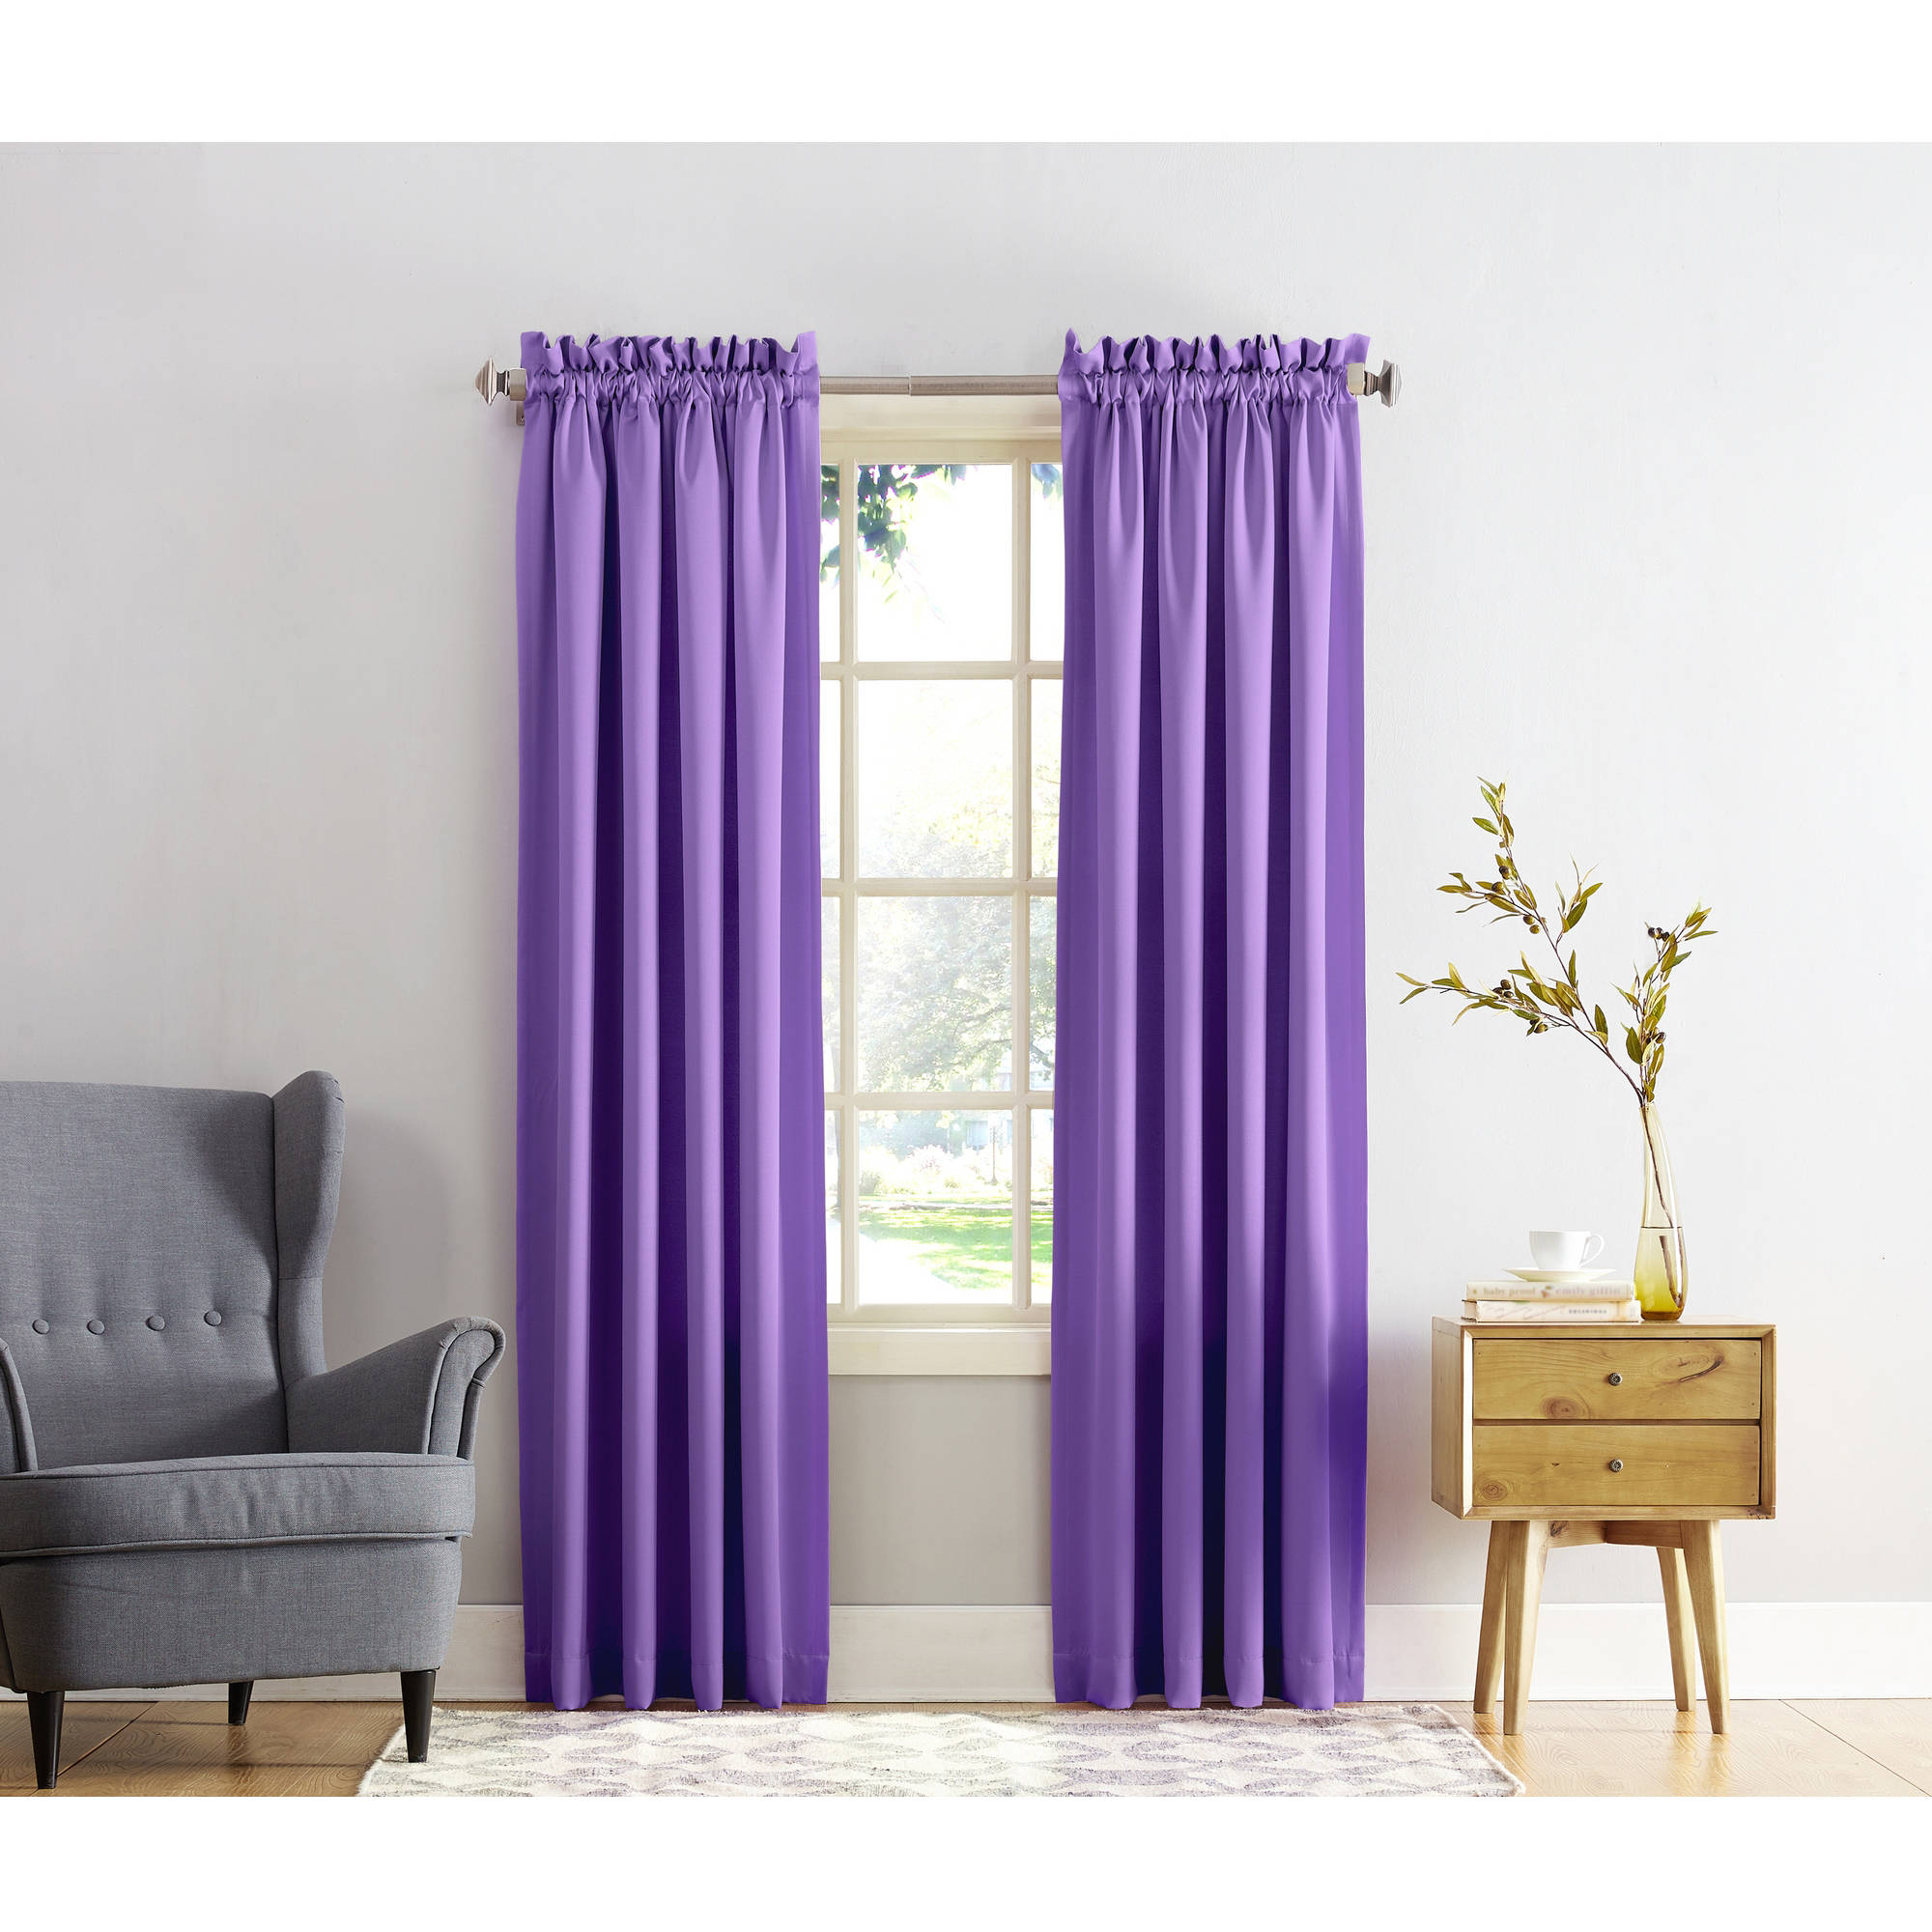 Sun Zero Kylee Room Darkening Curtain Panel